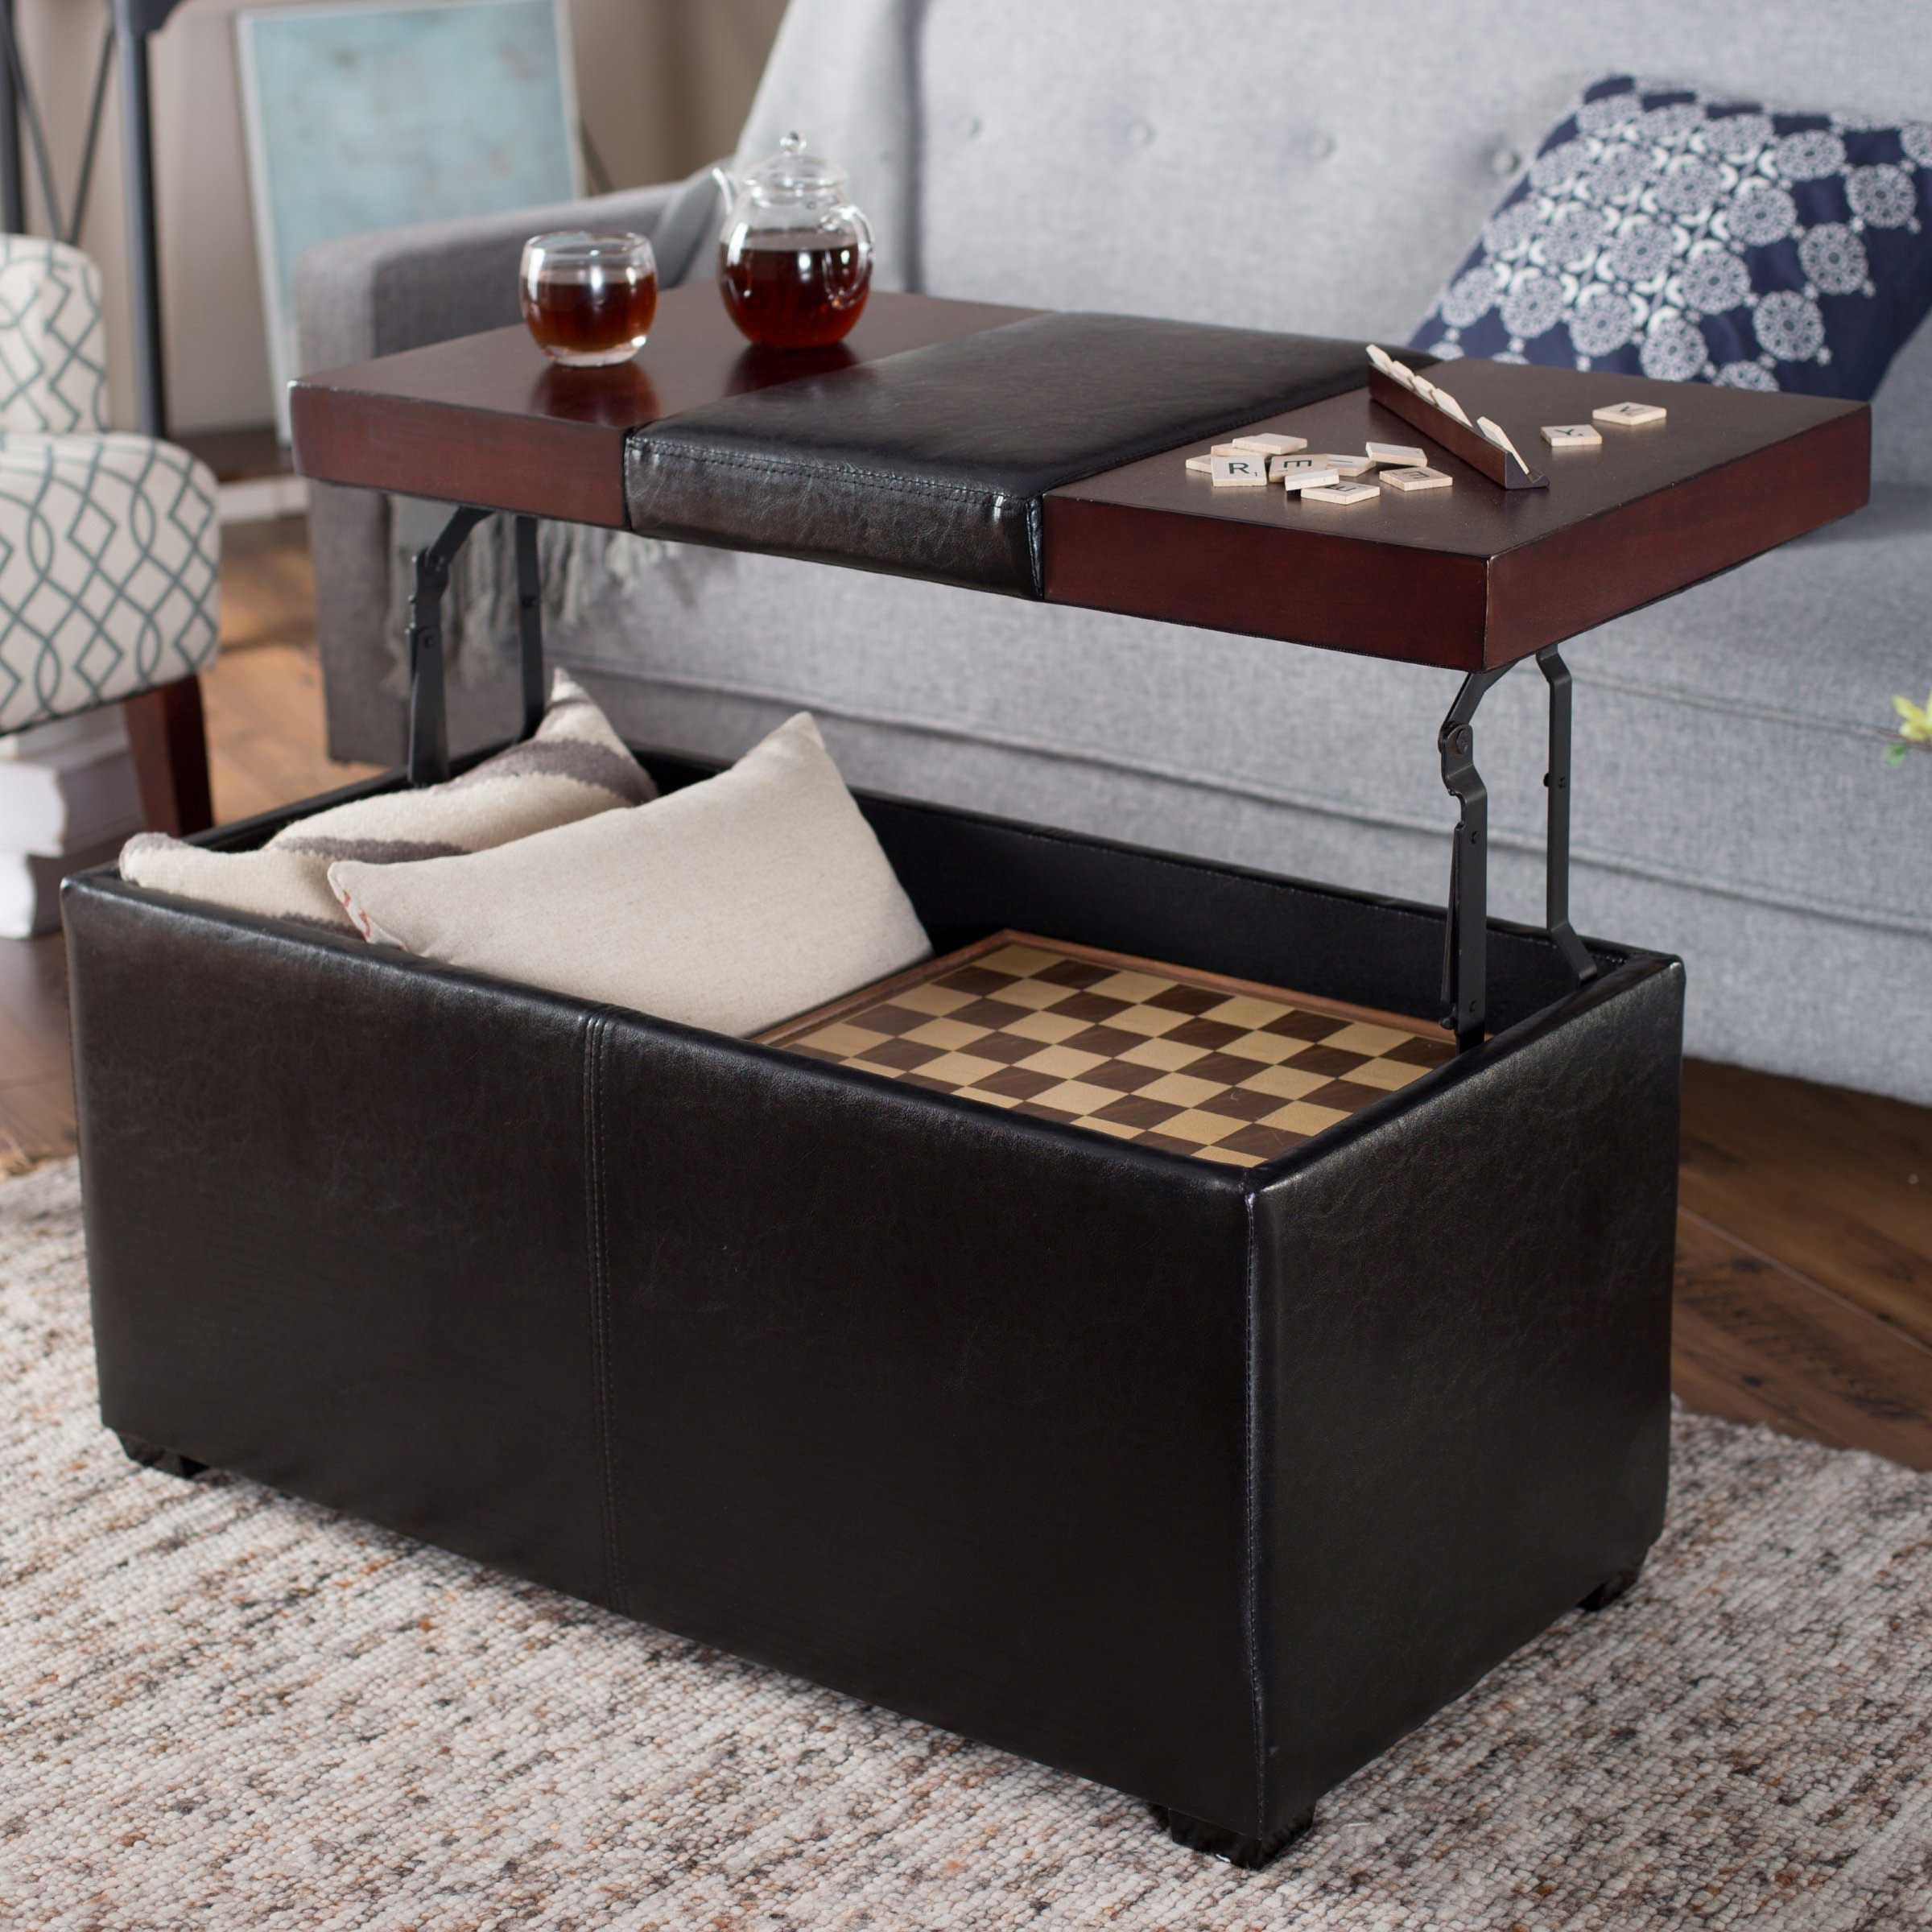 Convertible Coffee Tables Design Images Photos Pictures Is Also A